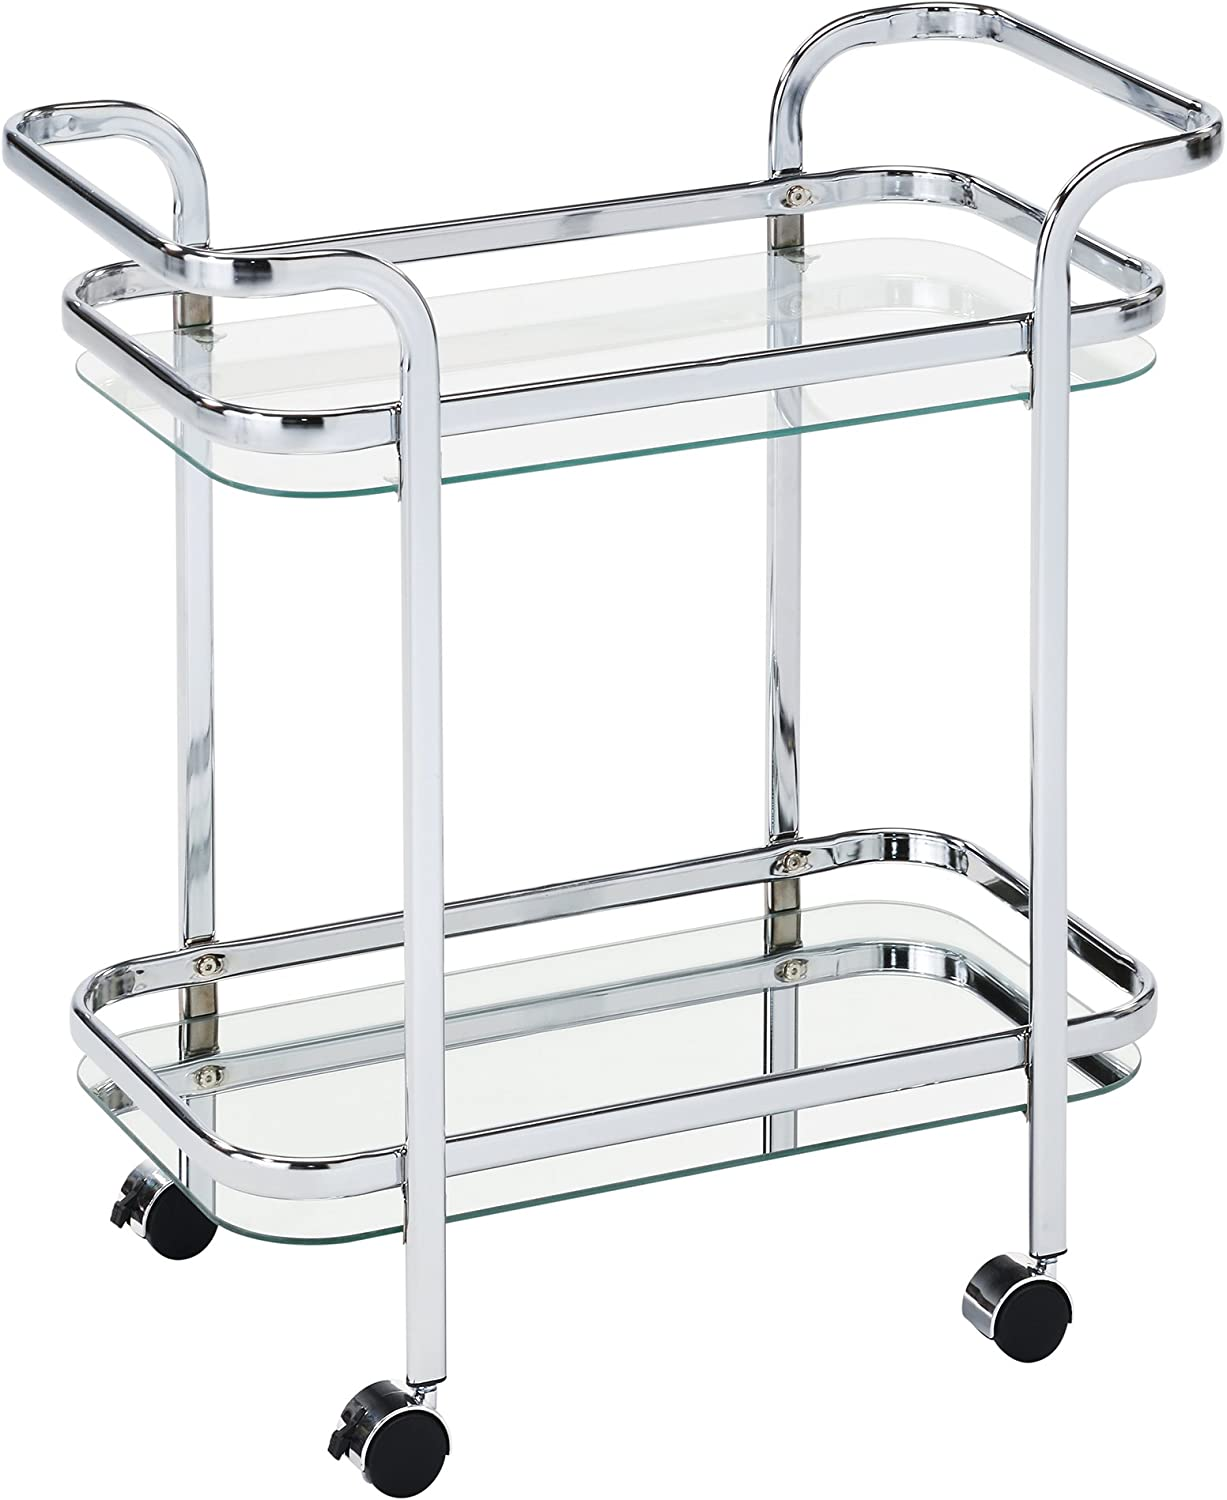 Whi 556-218CH 2 Tier Trolley, Chrome Glass